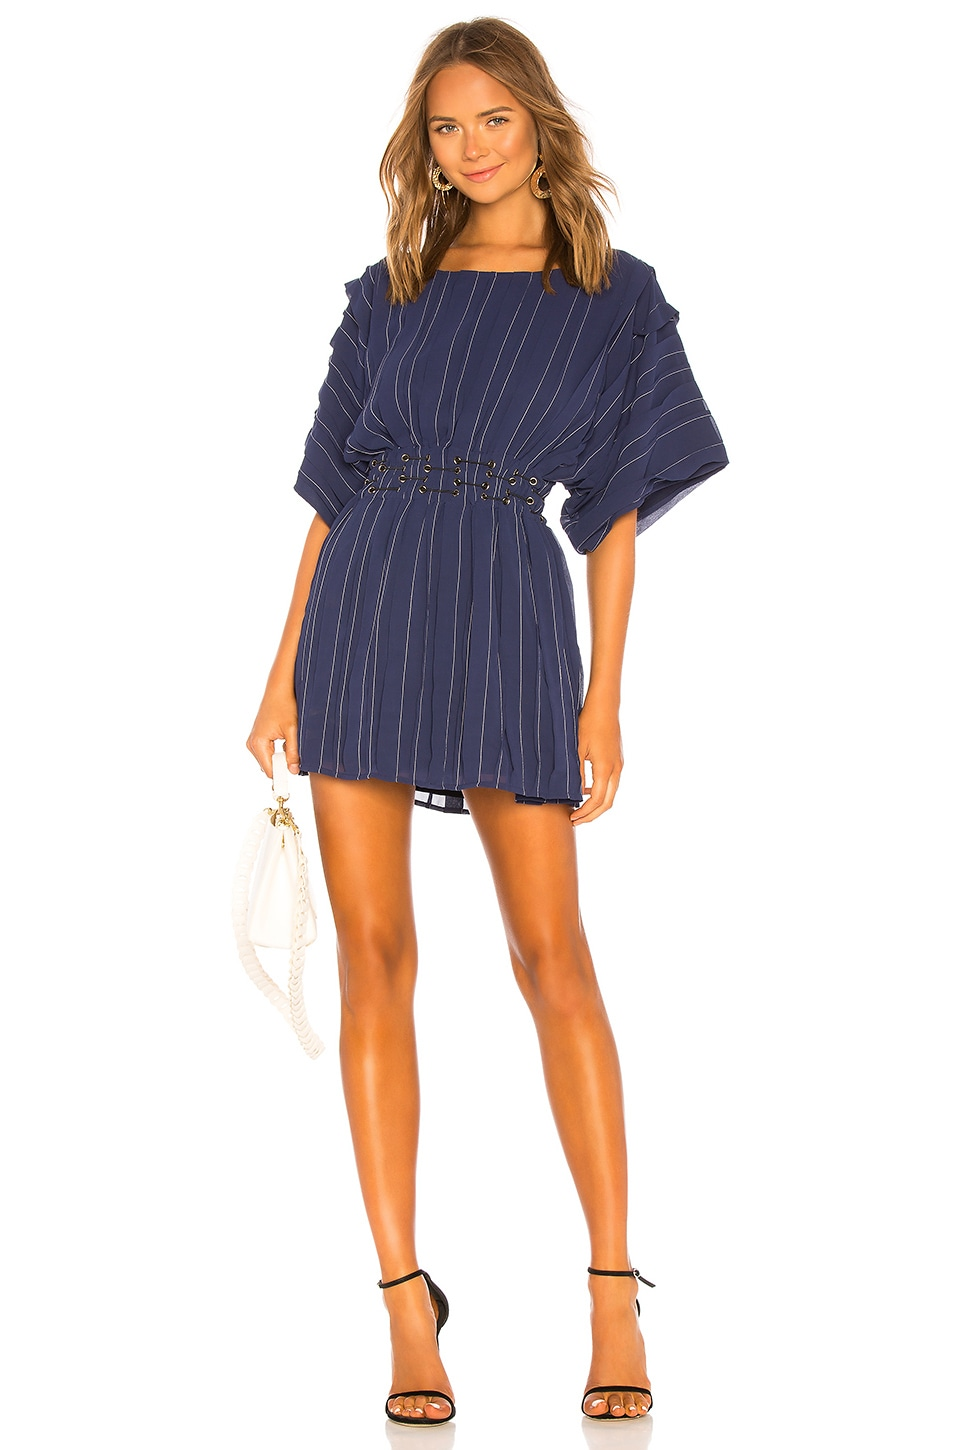 Tularosa Sienna Dress in Navy